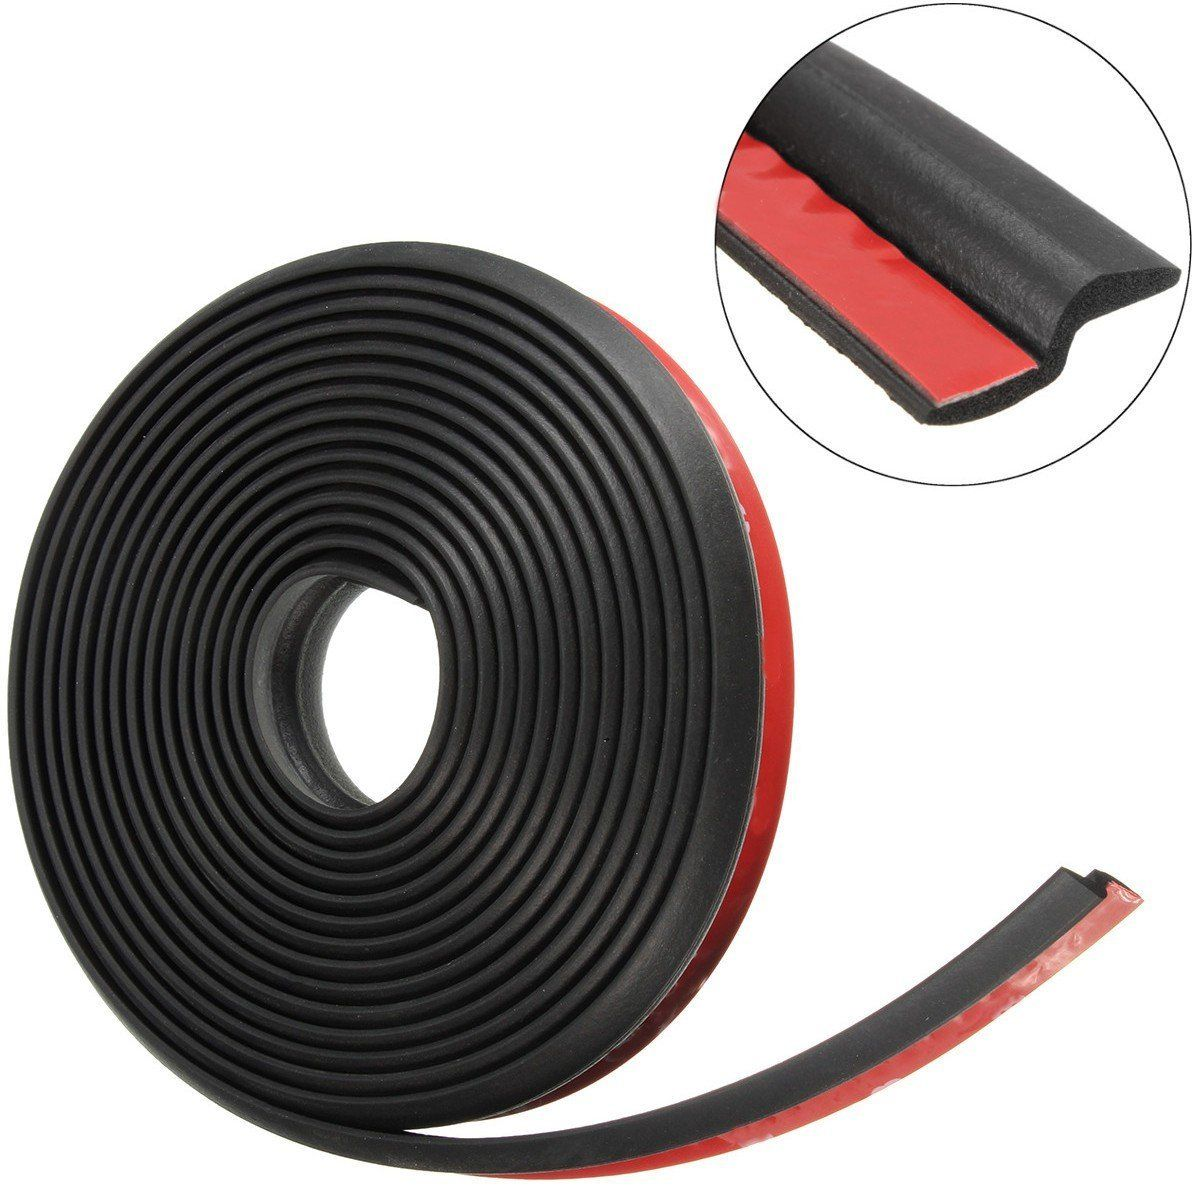 rubber profiles bulb trim seals automotive weather strips and seals door belt moldings pvc moldings wiring harness rubber grommets custom extruded  [ 1200 x 1200 Pixel ]